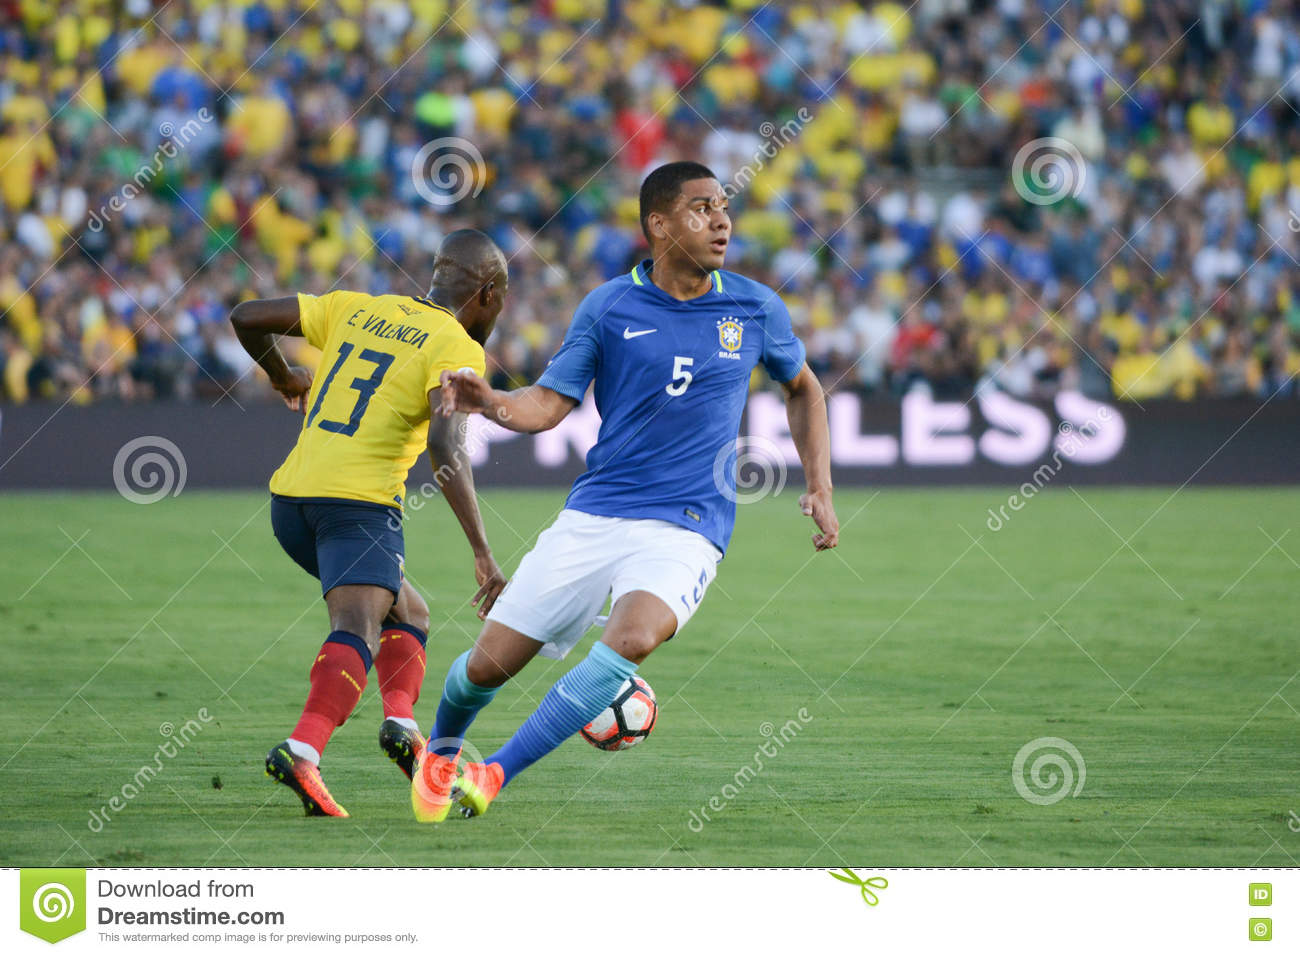 Soccer Players Enner Valencia 13 And Casemiro 5 During Copa Amer